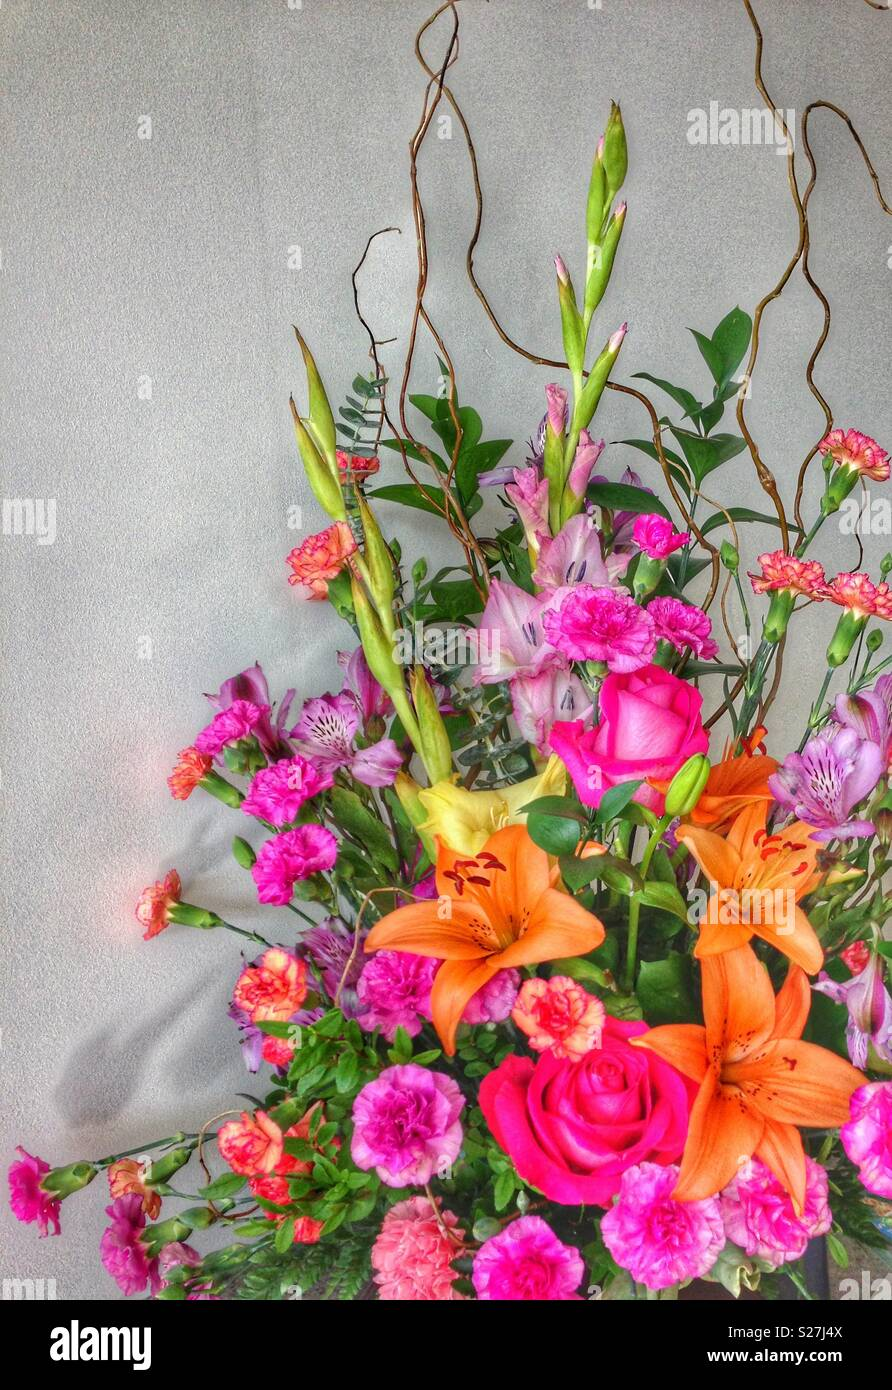 Bright colourful bouquet of tropical flowers like tiger liklies, carnations and roses. Orange, pink, green lush plant. Grey wall as background. - Stock Image